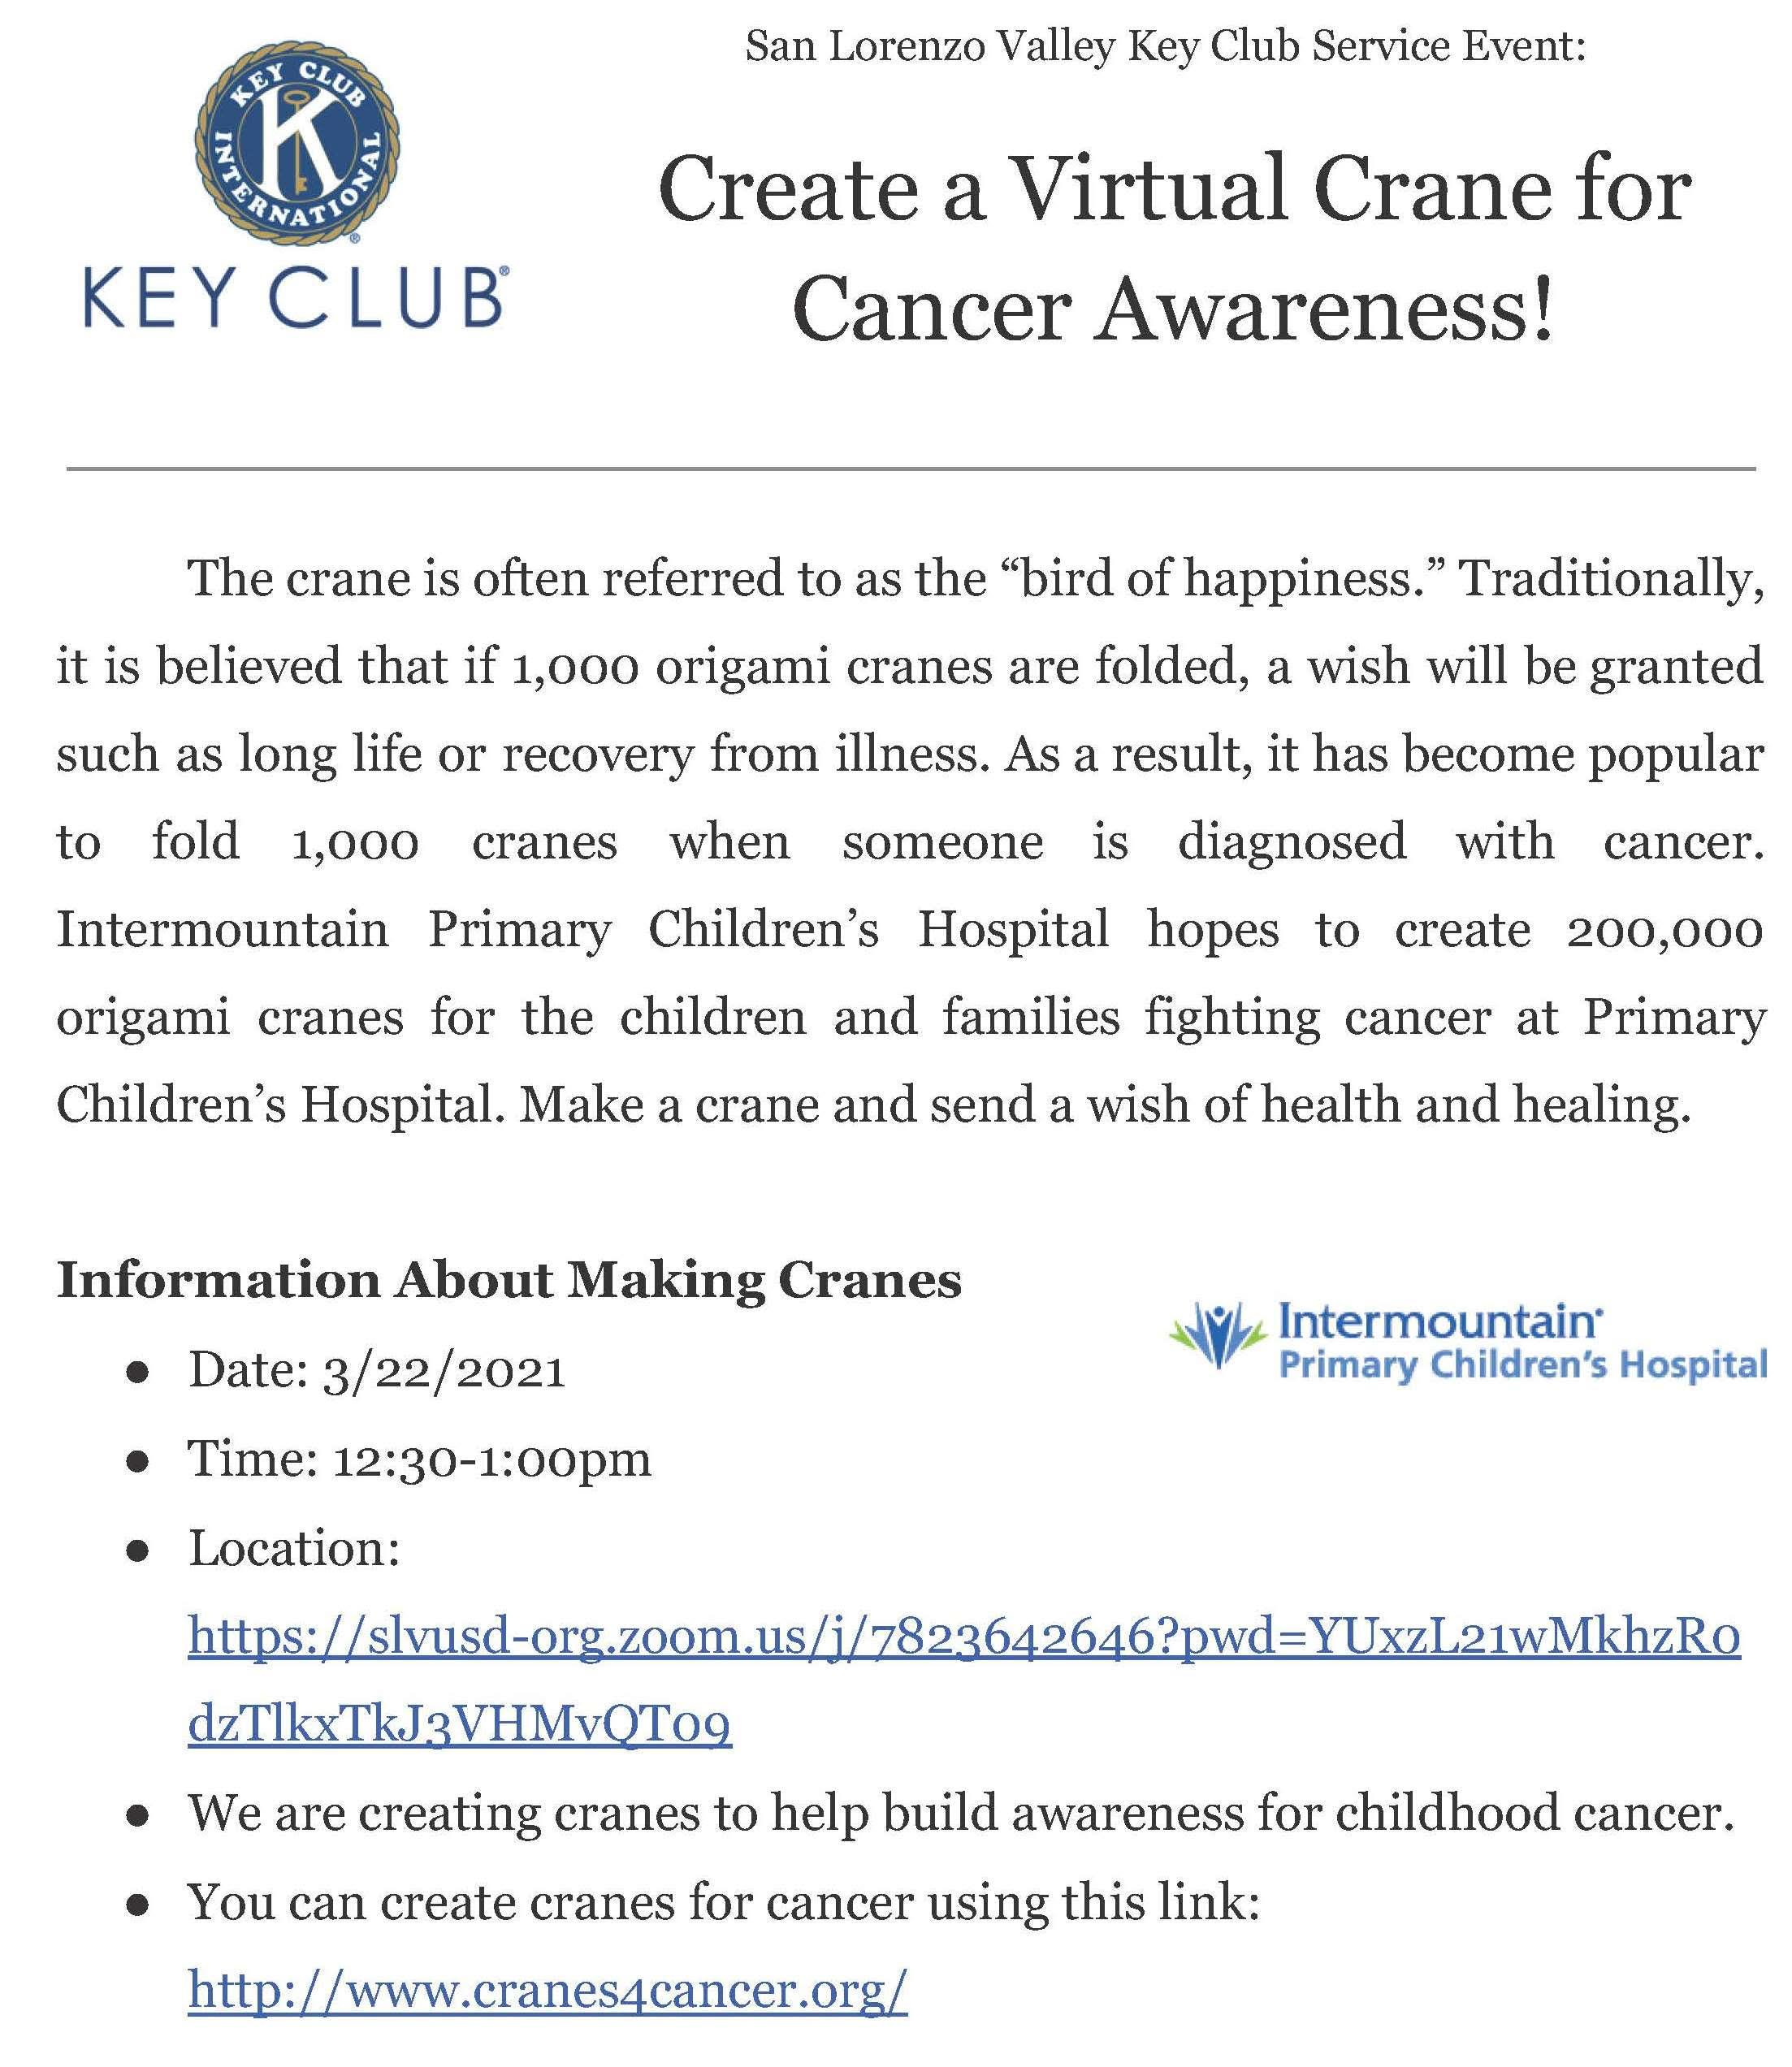 Key Club Event; for details visit www.cranes4cancer.org